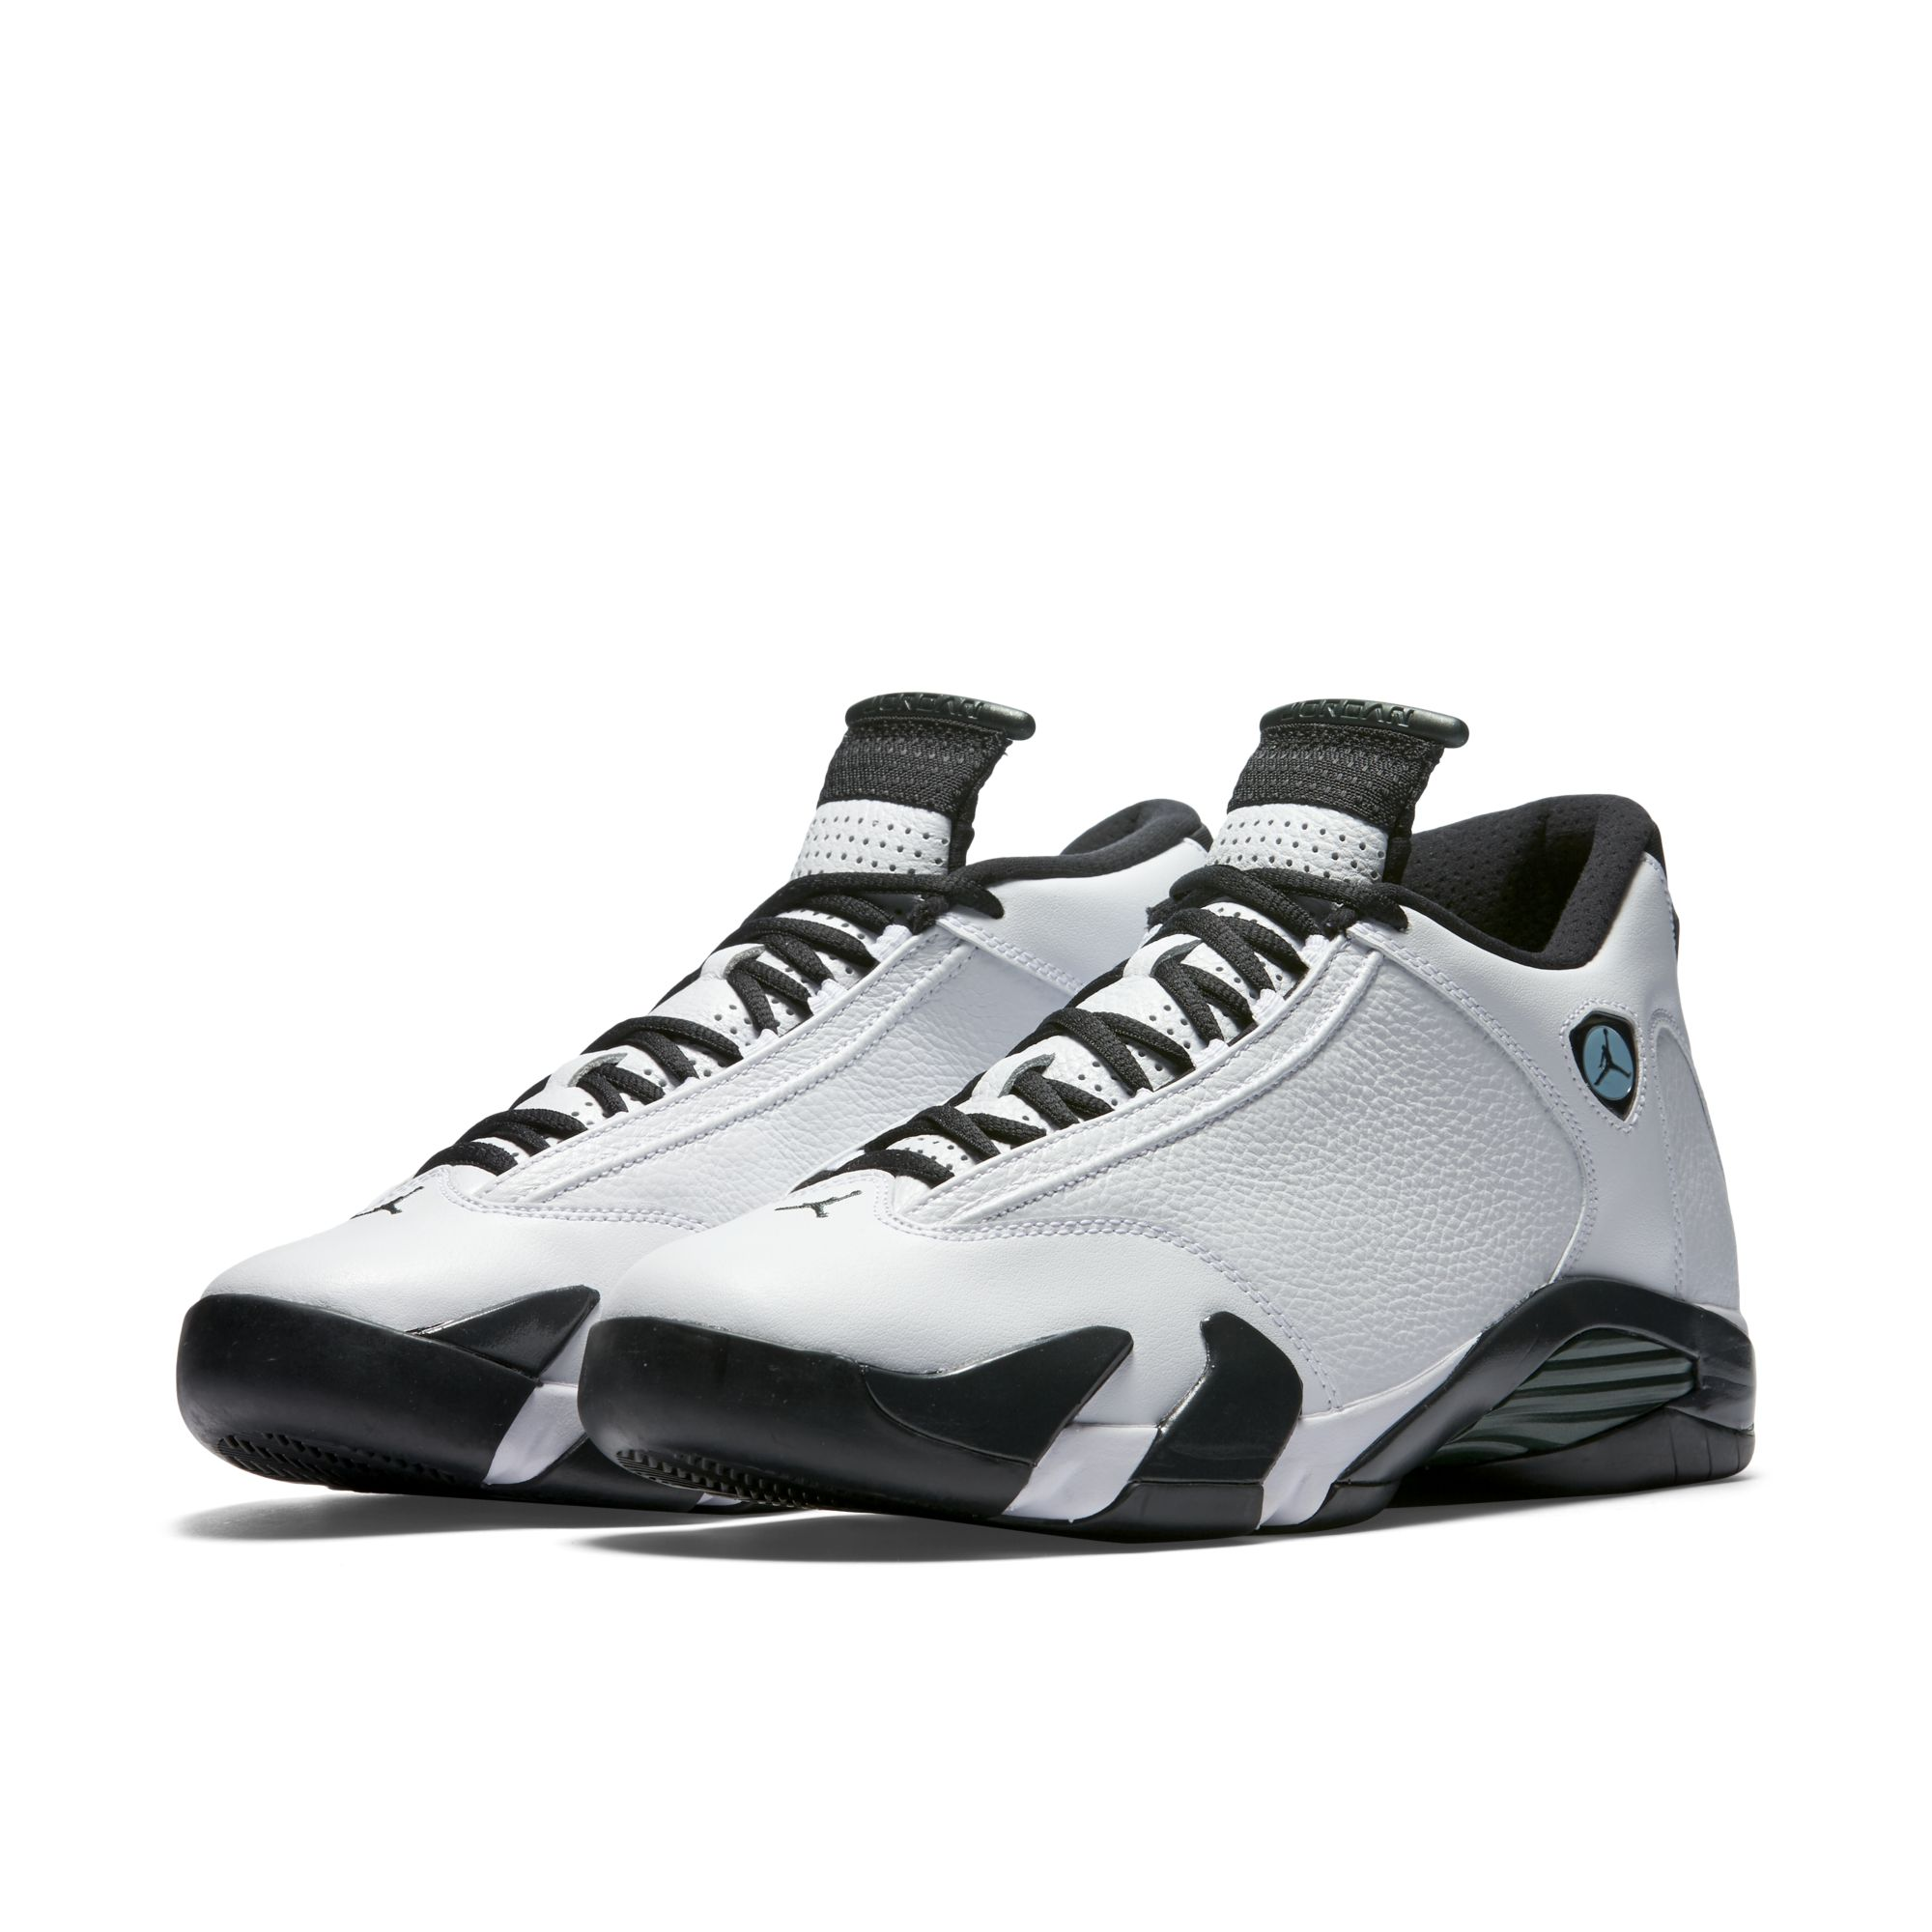 China Made Air Jordan 14 Oxidized Green Shoes Retro Men Best CcN4H